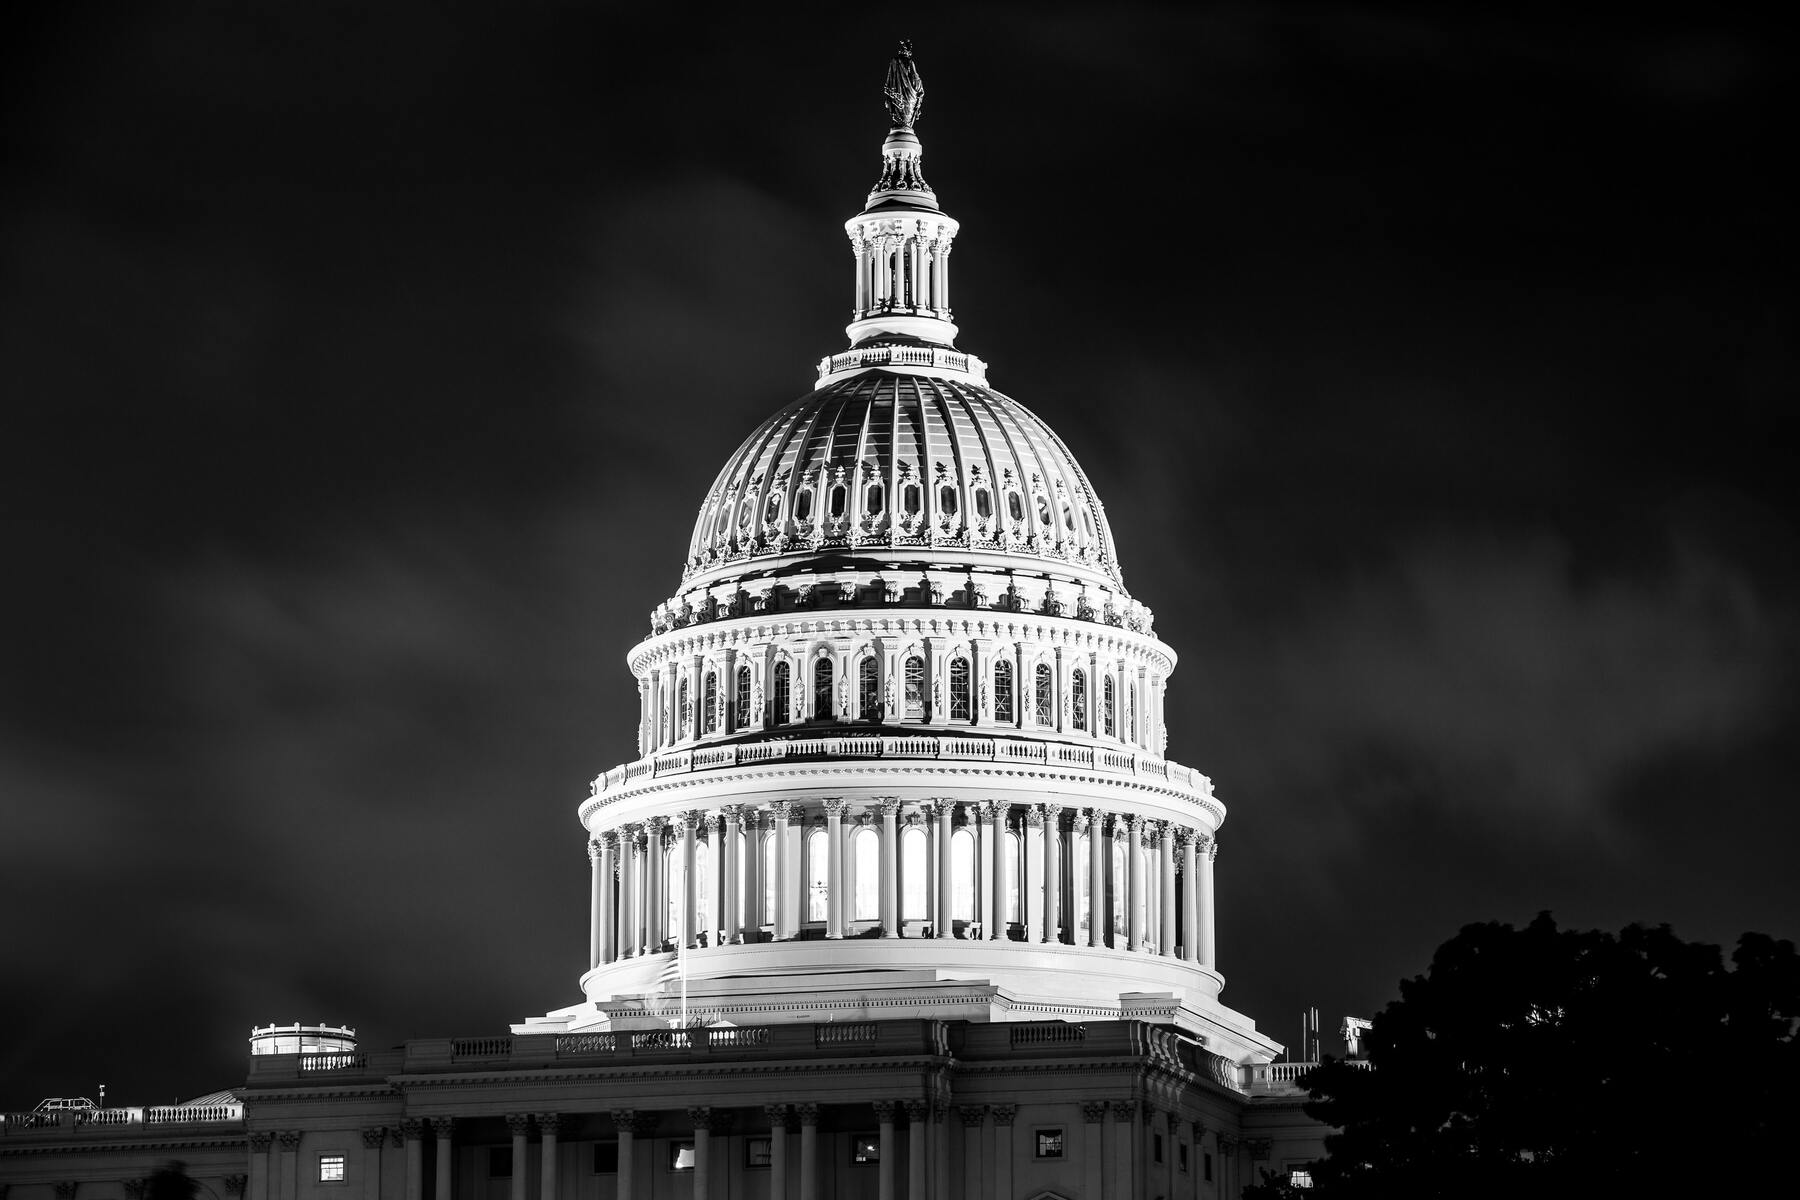 Black and white image of the U.S. Capitol dome at night